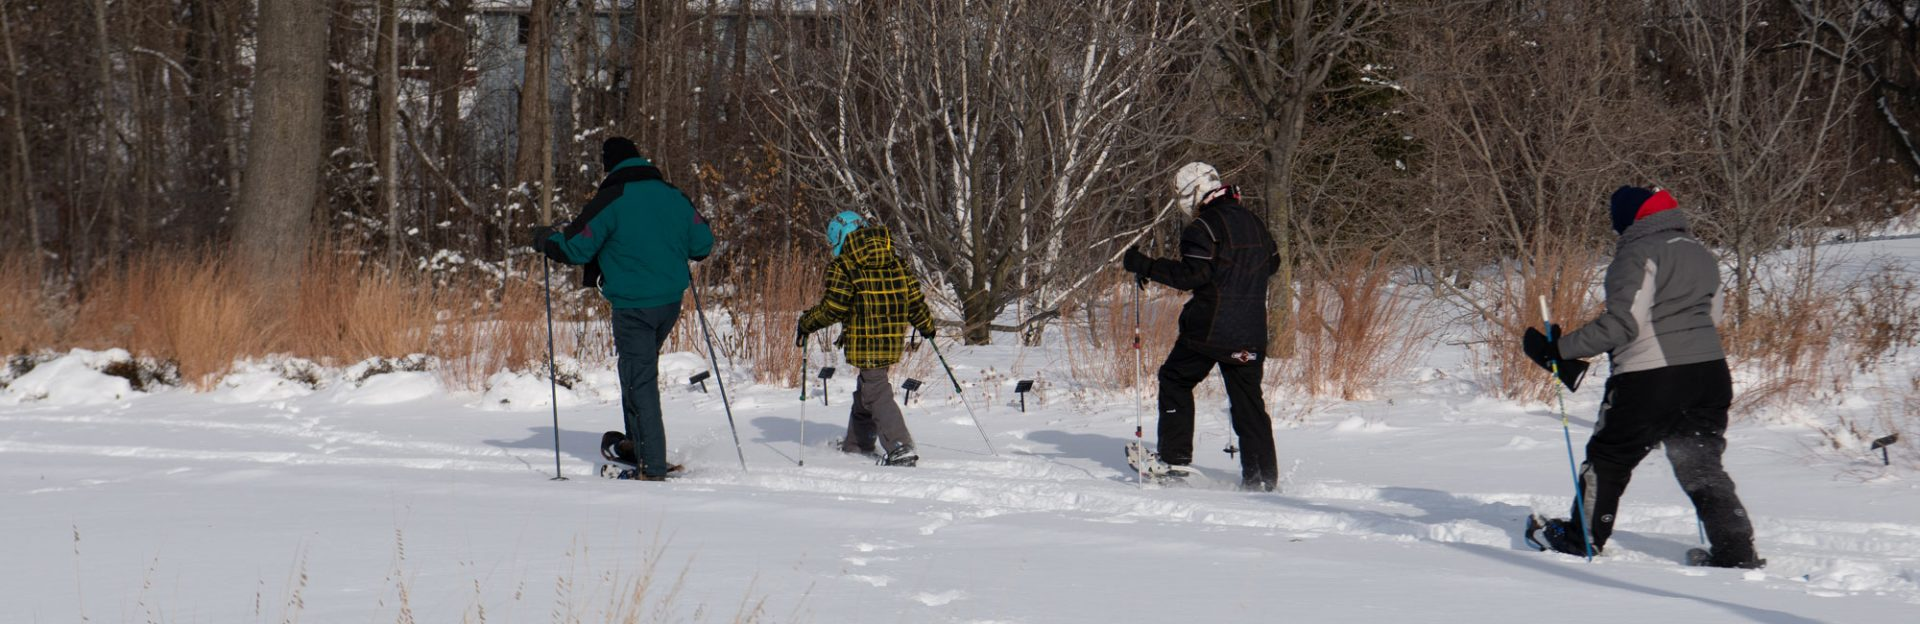 Final guided snowshoe hike on Saturday, February 29